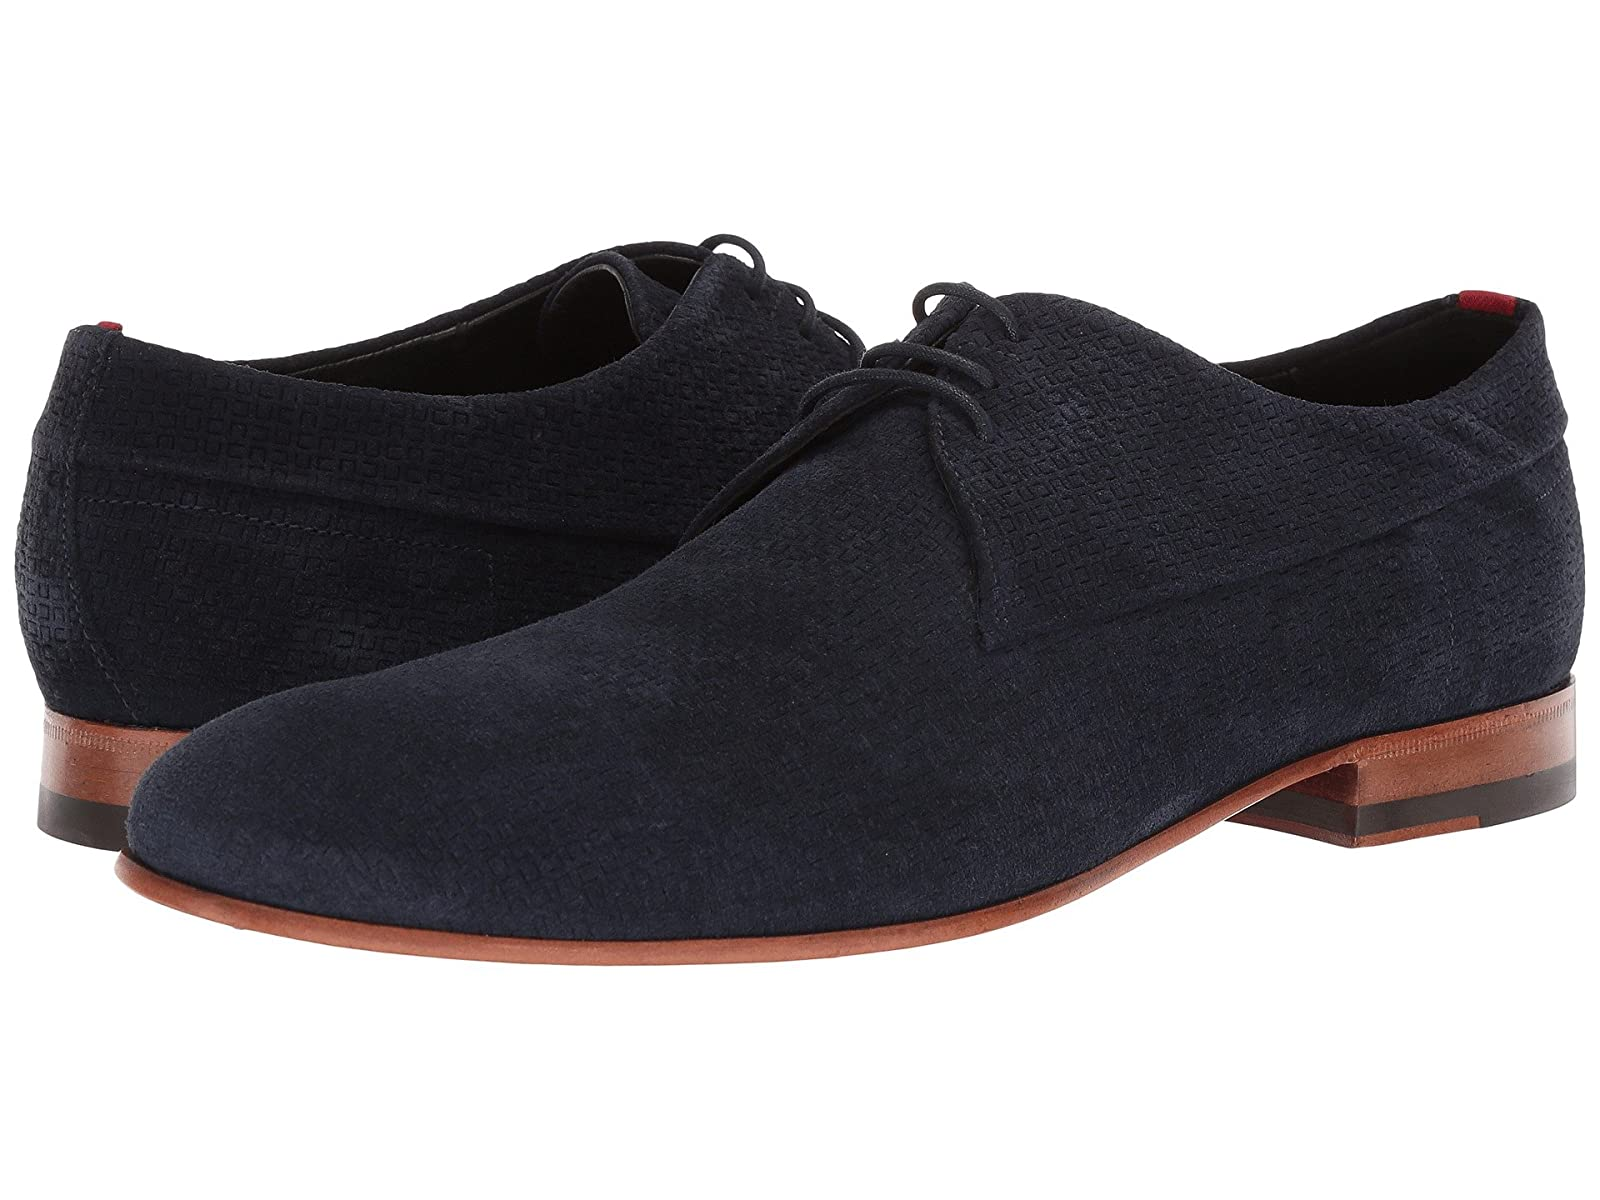 BOSS Hugo Boss Cordoba Derby By HugoAtmospheric grades have affordable shoes